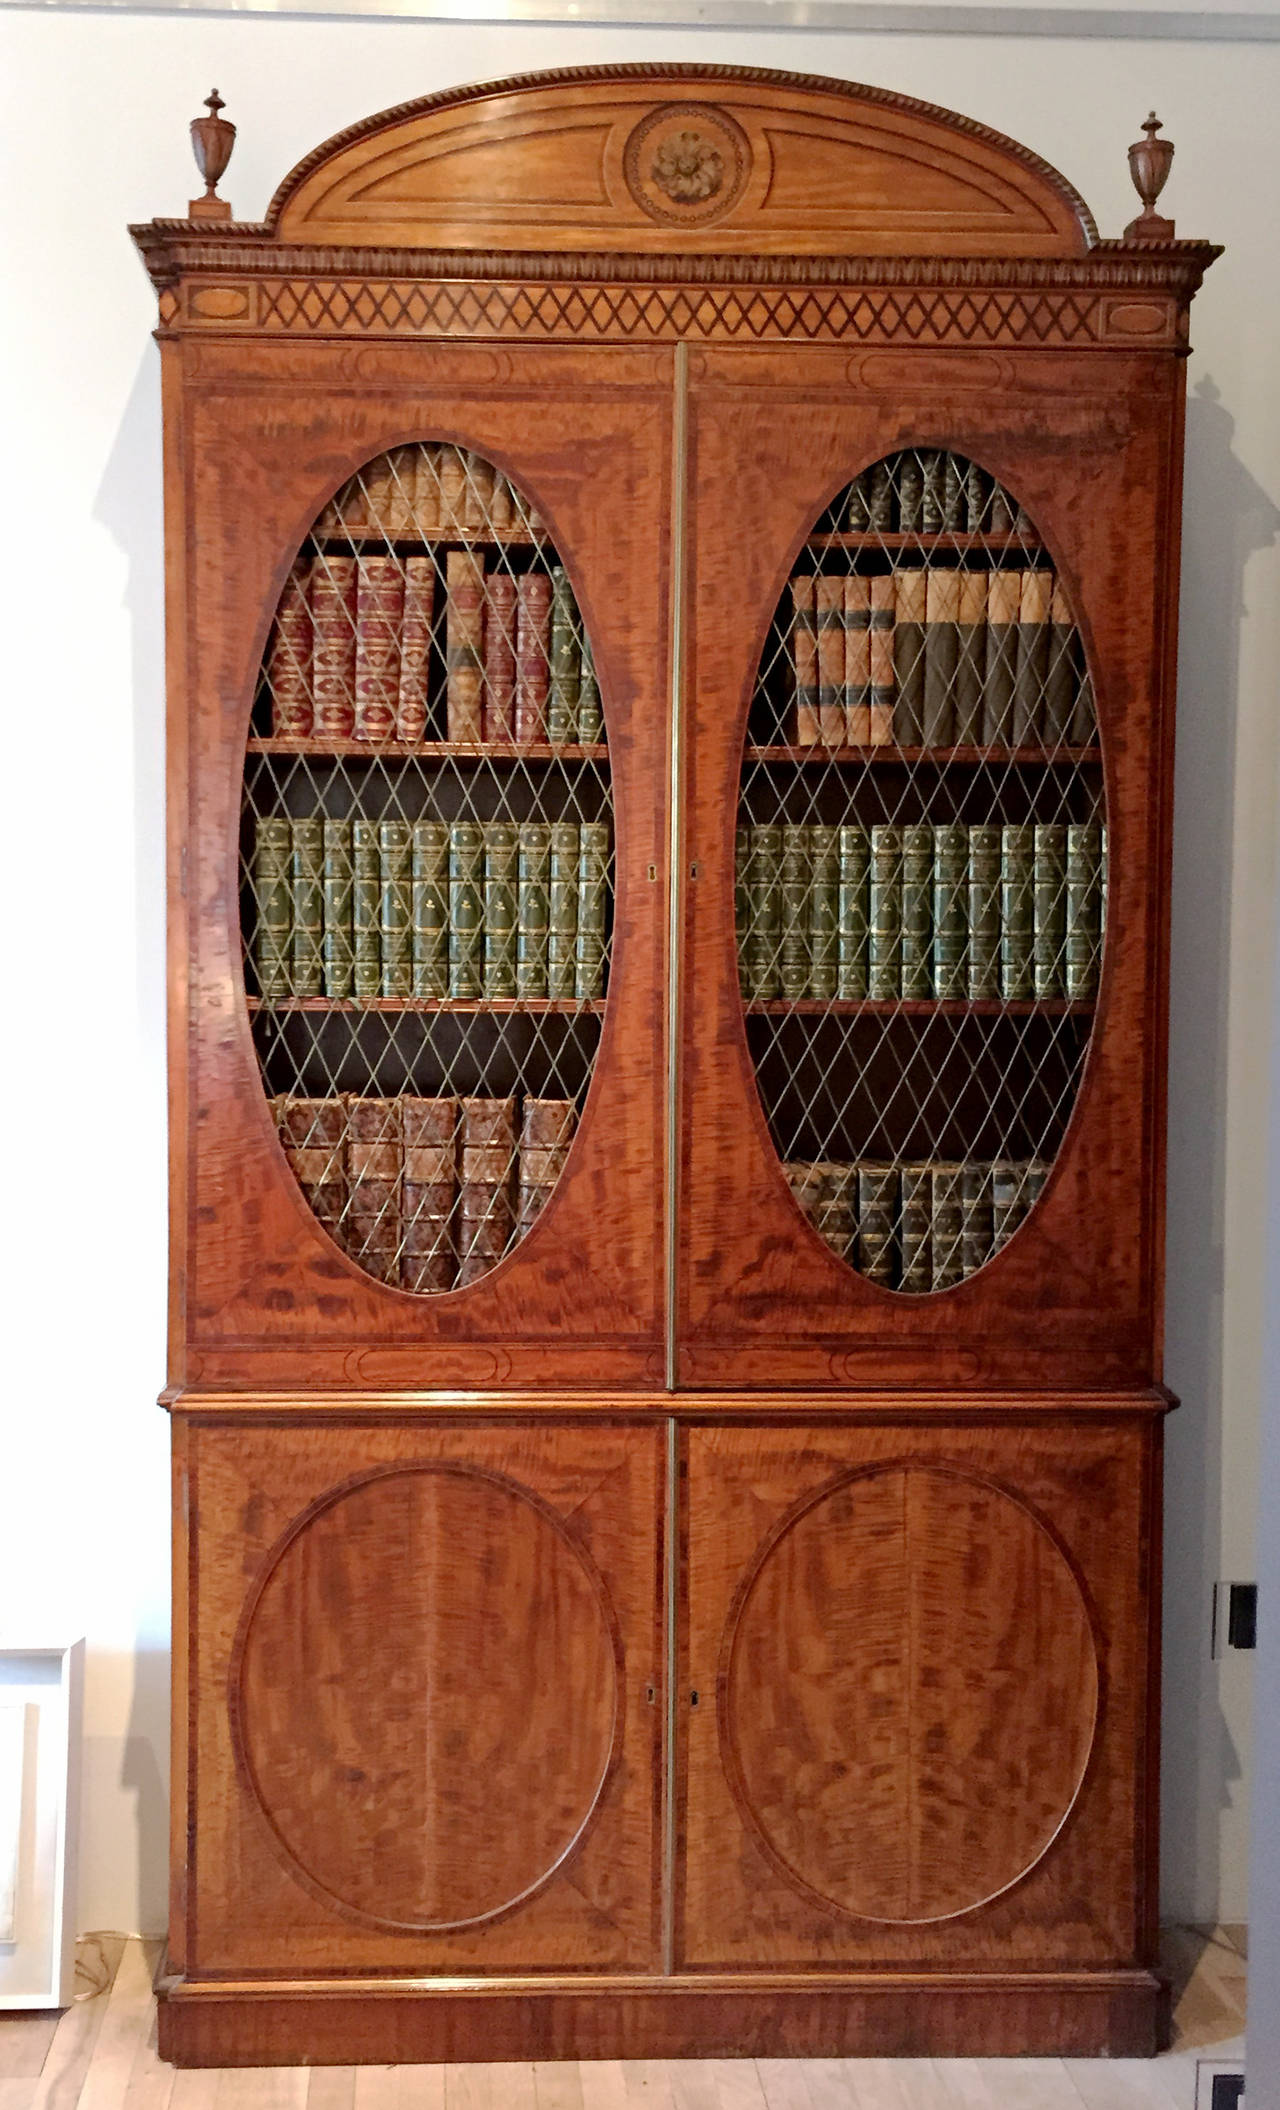 A very fine Hepplewhite decorated inlaid satinwood and mahogany two-part bookcase cabinet, English, circa 1785. Provenance: The Estate of Mary Knowles (Polly) Wisner Fritchey of The Georgetown Ladies Social Club, Washington, D.C. Literature: F.